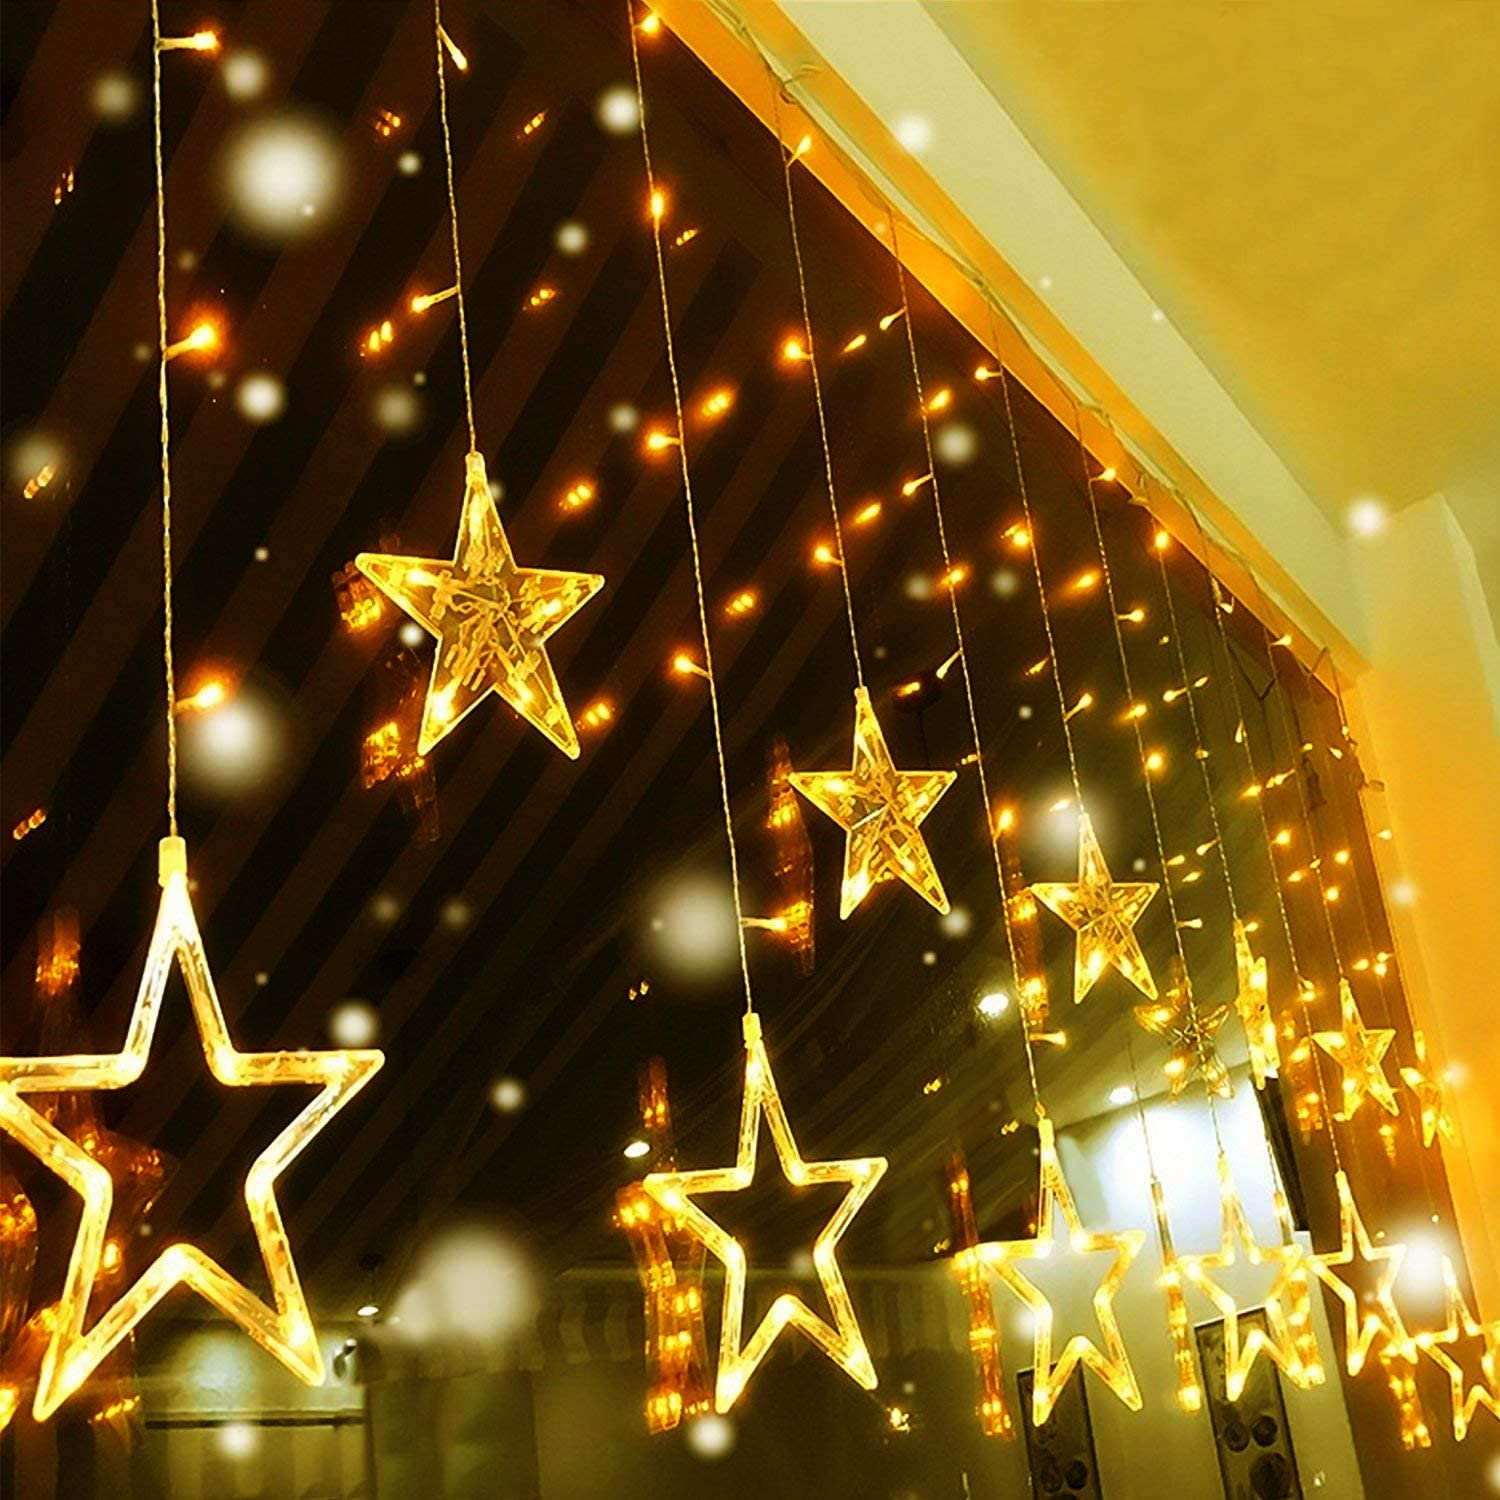 Quntis LED Max 45% OFF 12 Stars Curtain Lights Window Christmas - LEDs specialty shop 138 I